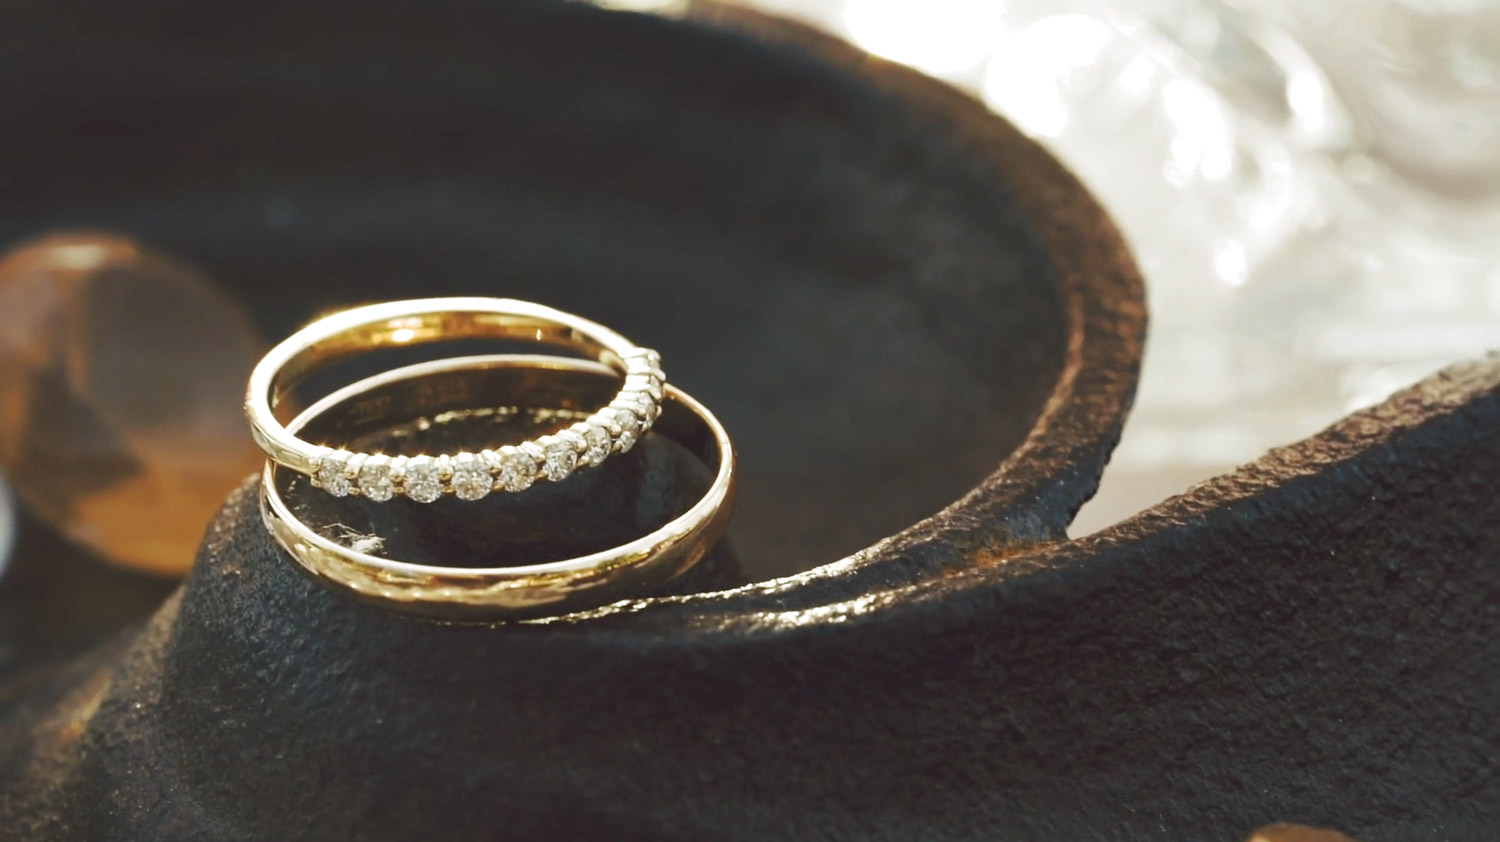 wedding rings are on the old metal surface, captured by photographer in Amsterdam